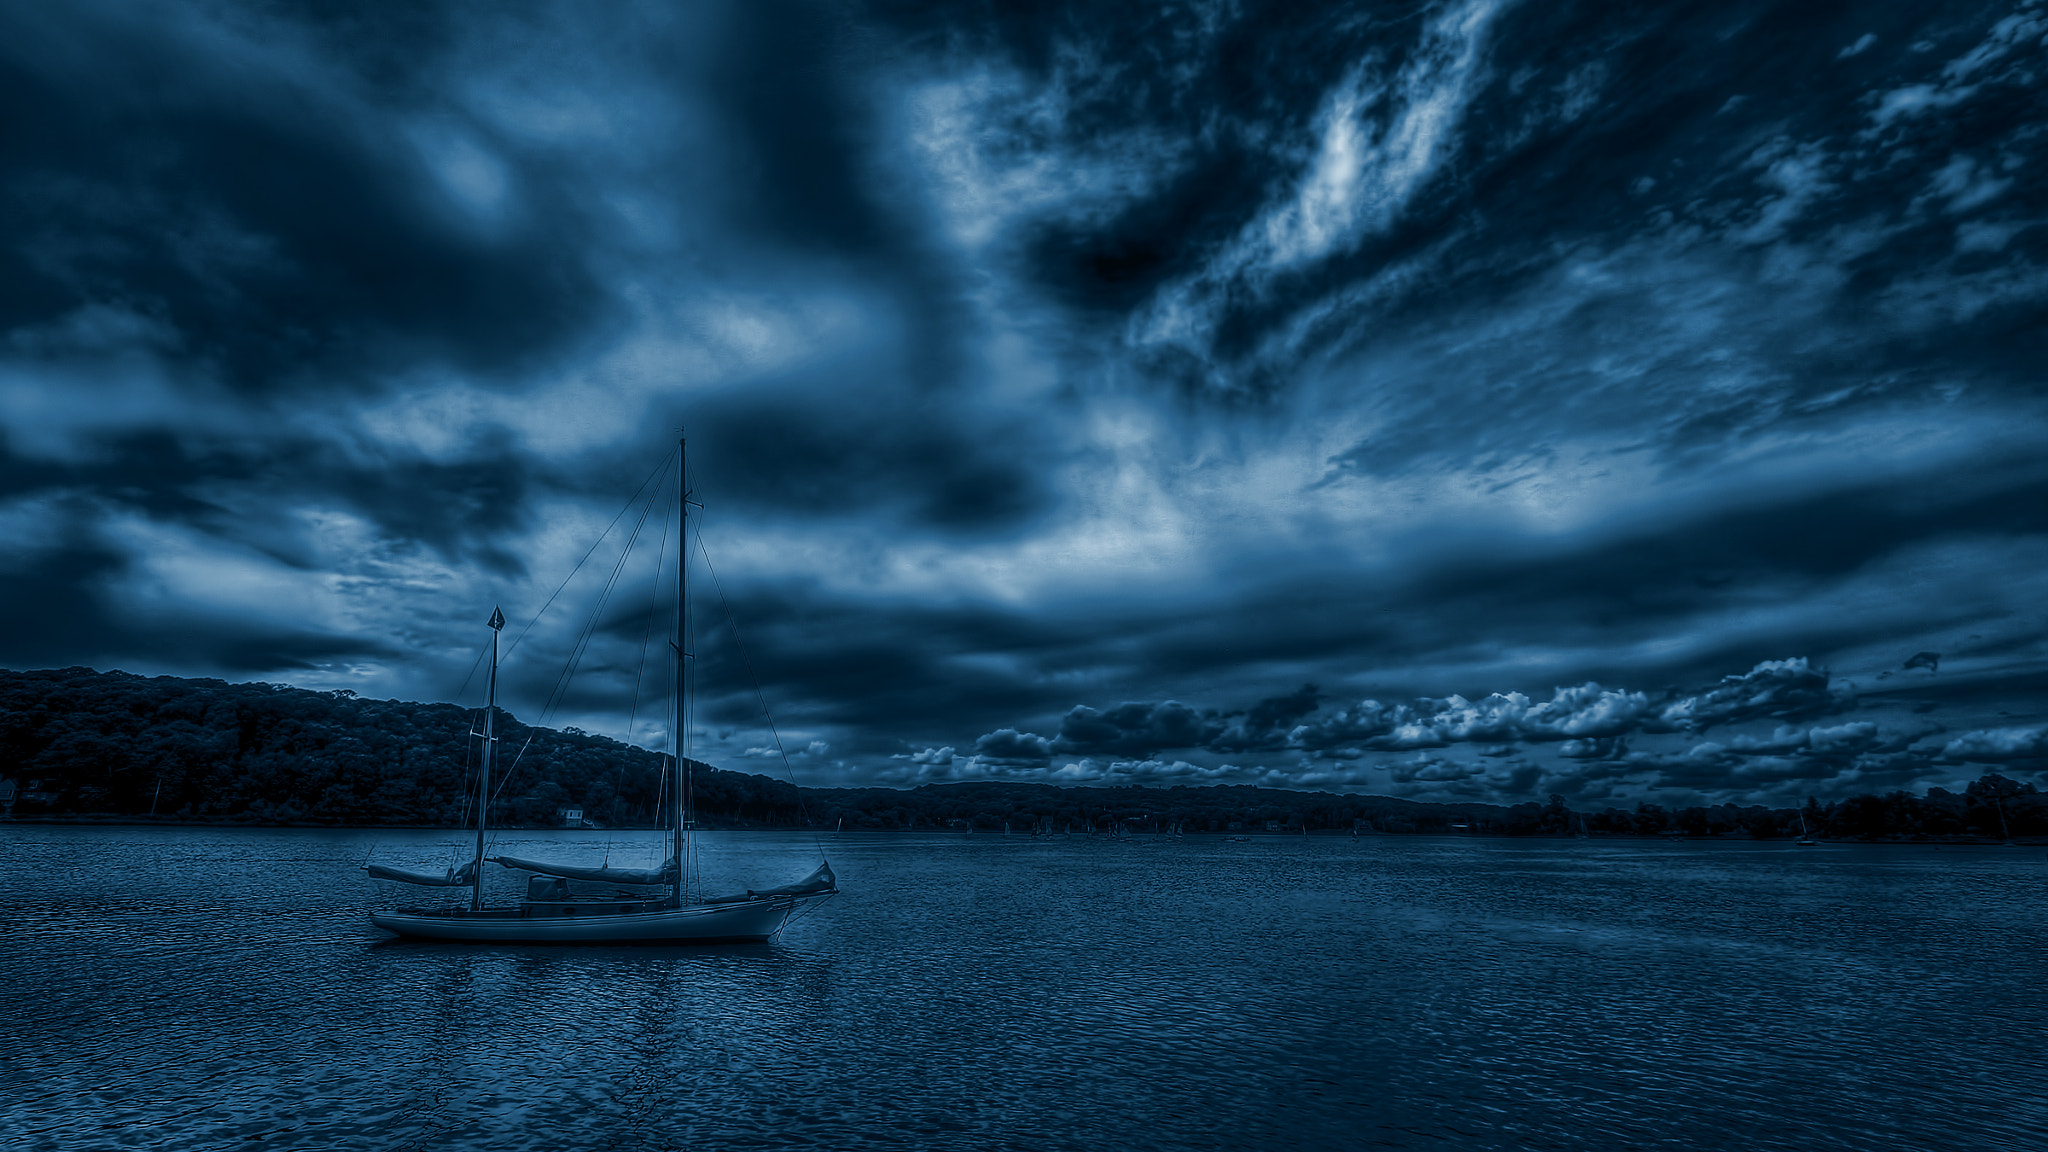 Photograph A Boat on Blue Bay by Omar Sanders on 500px